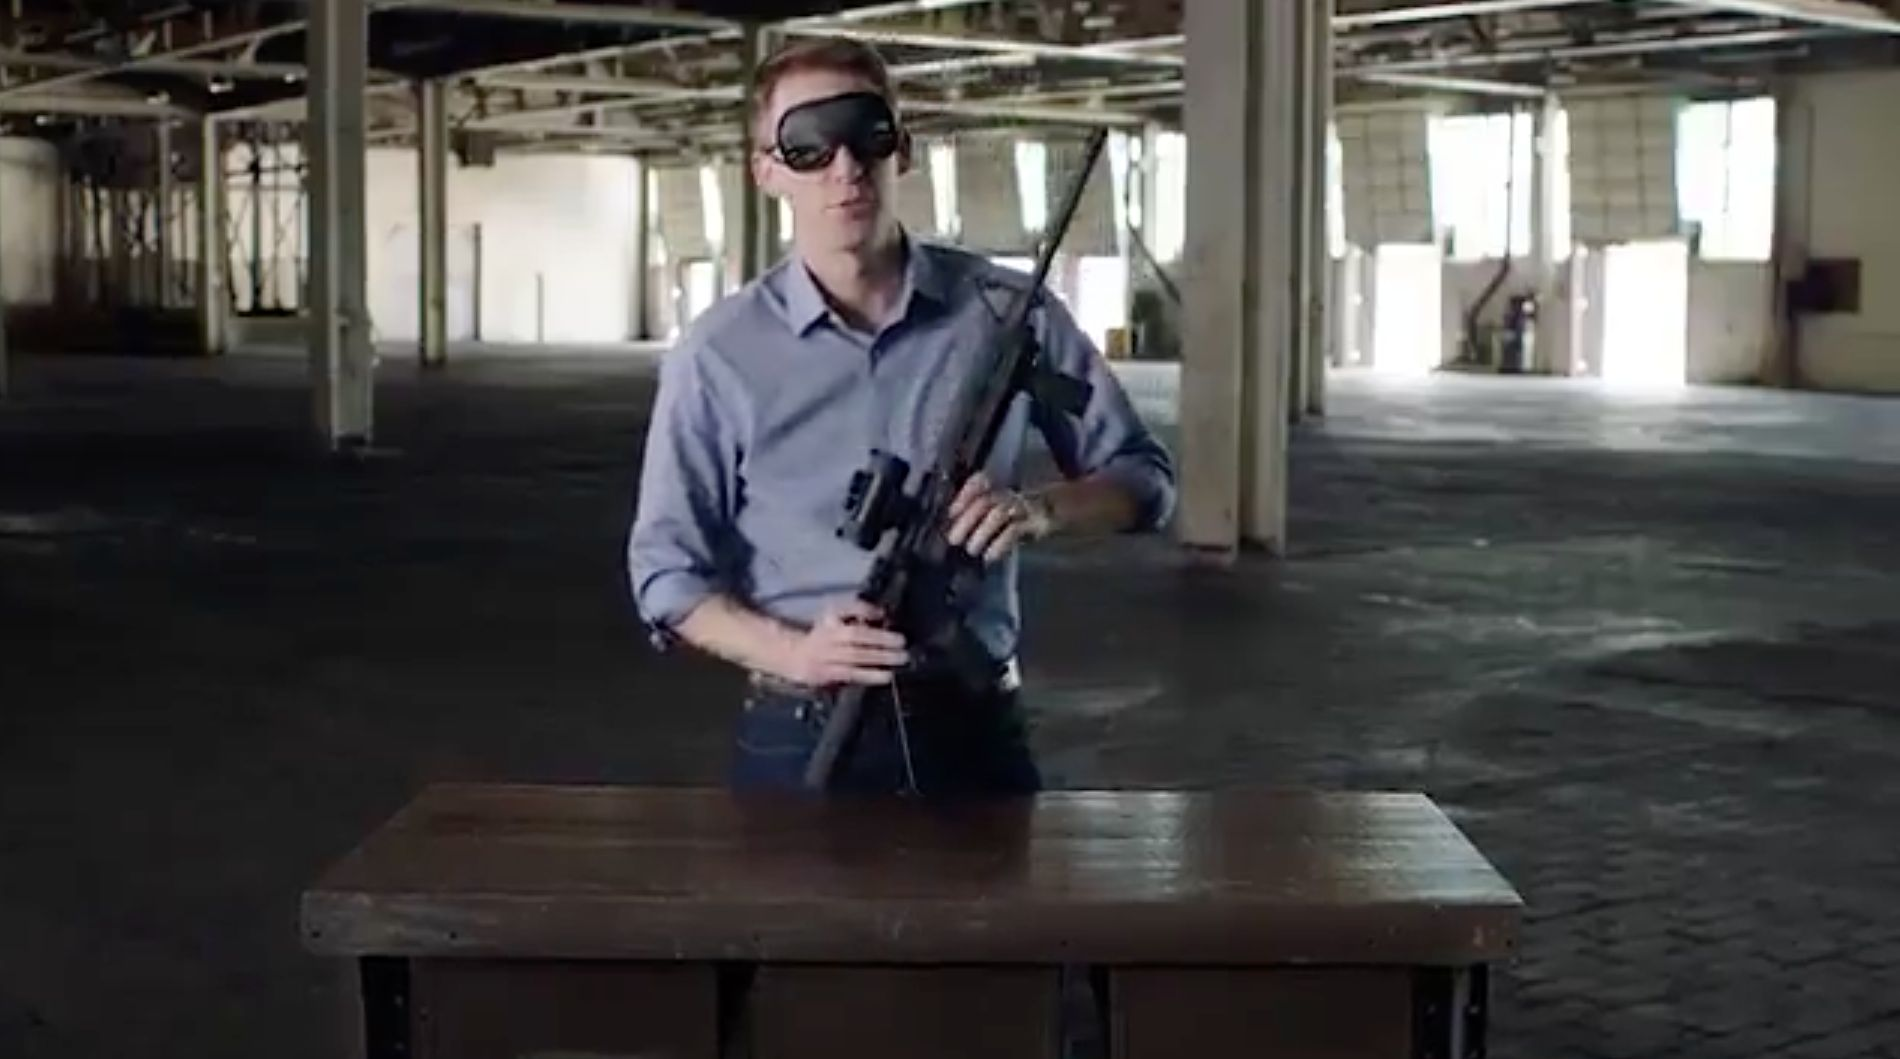 This Gun Control Ad Is The Most Nails Thing To Come Out Of The USA This